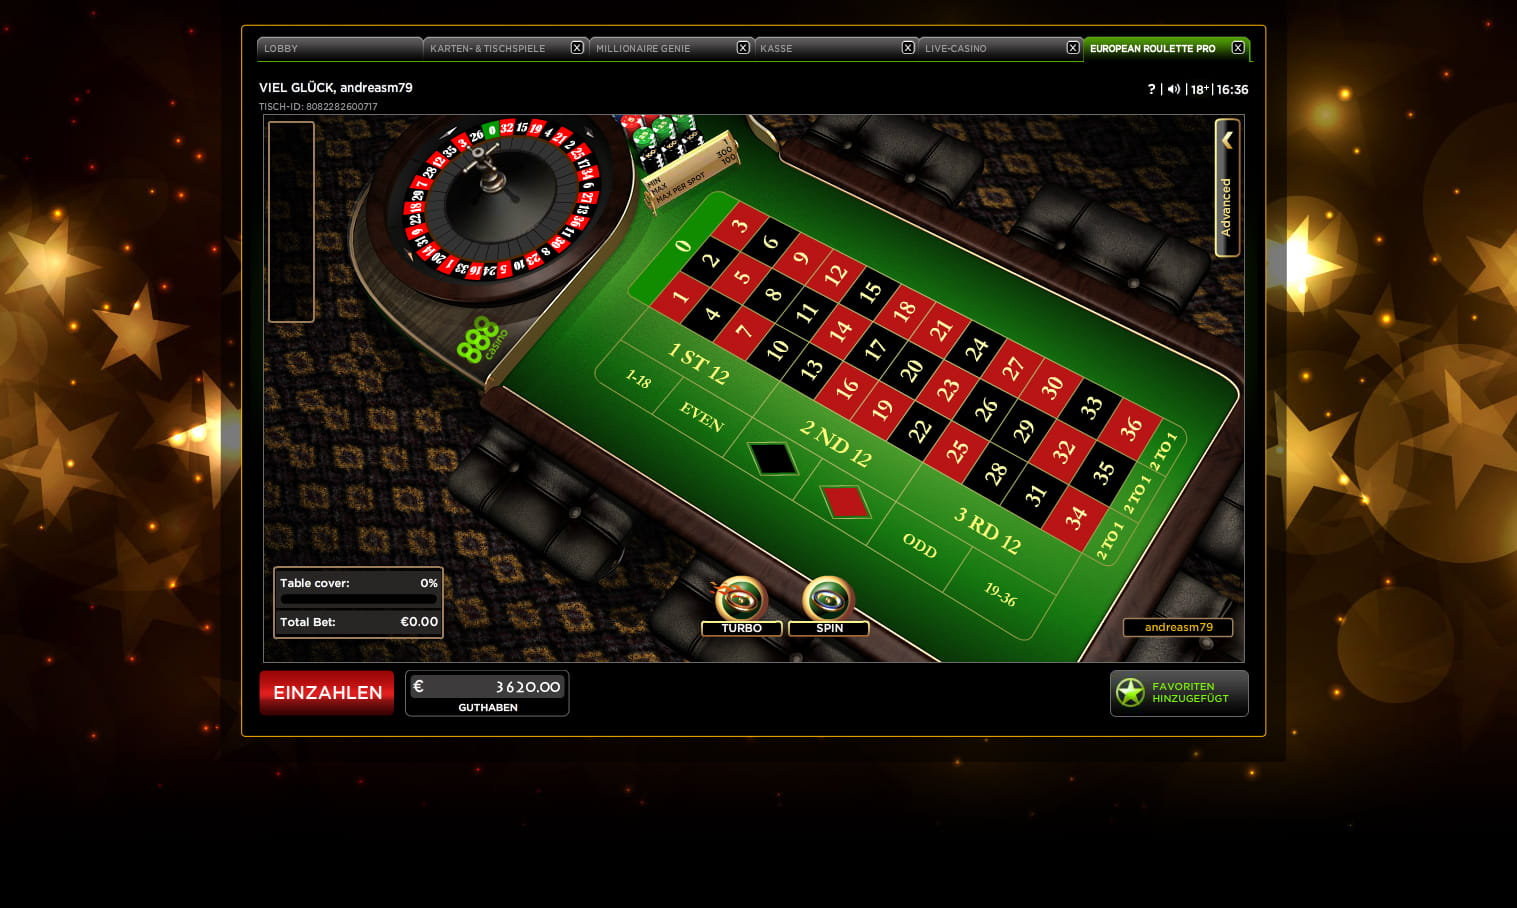 play casino online spielen deutsch